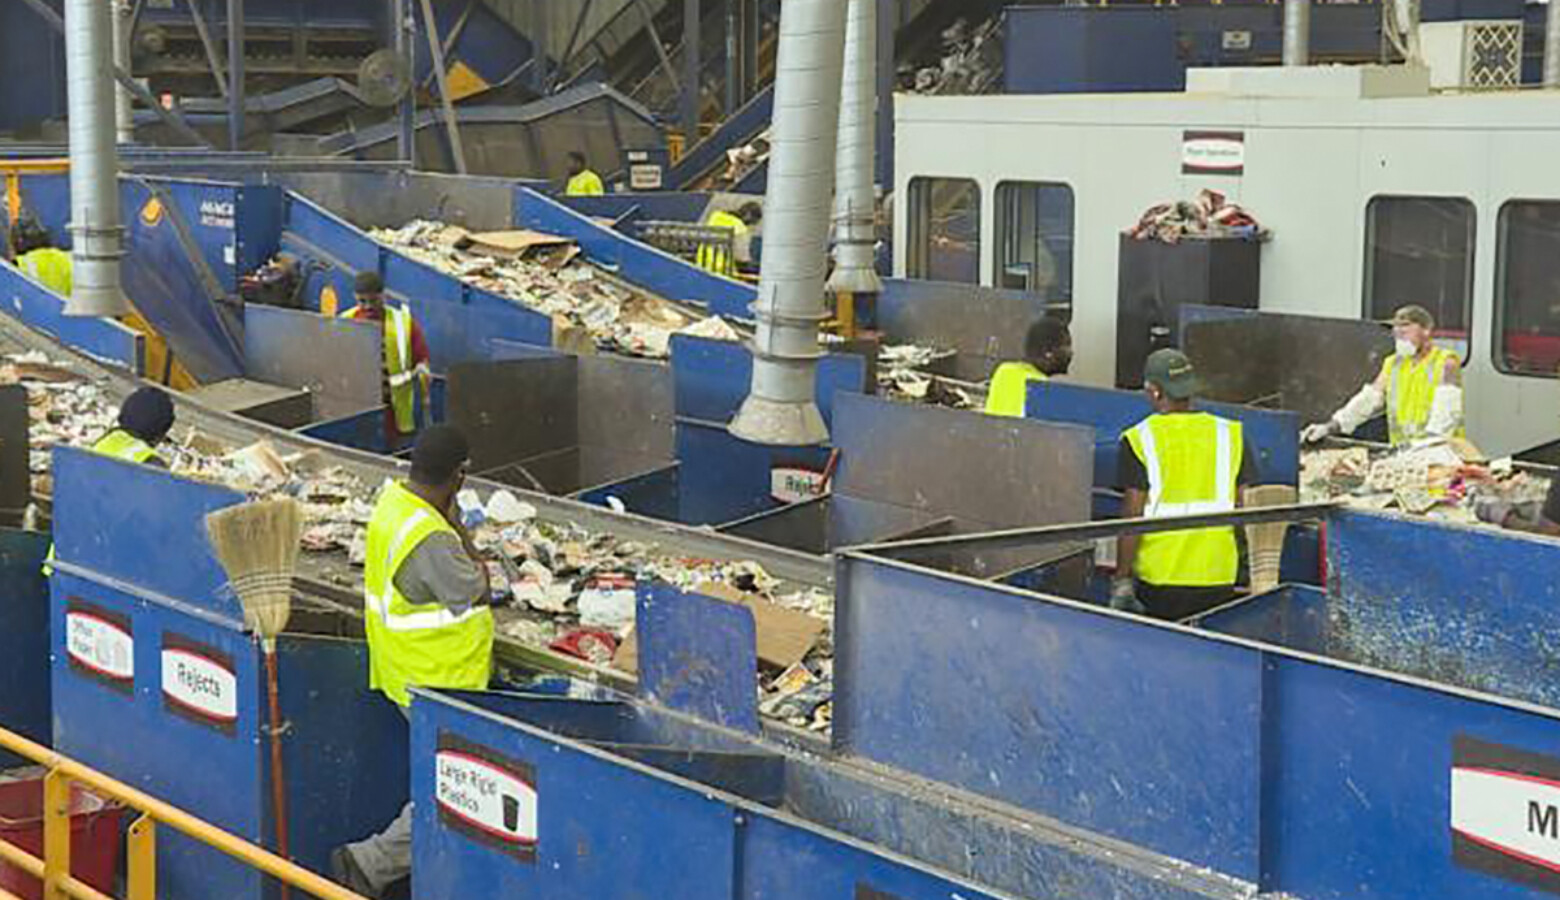 Experts say facilities where recycling is sorted and processed like the Rumpke Material Recovery Facility in Cincinnati, shown here, need funding to upgrade their technology and prevent contamination (FILE PHOTO: Zach Herndon/WTIU)